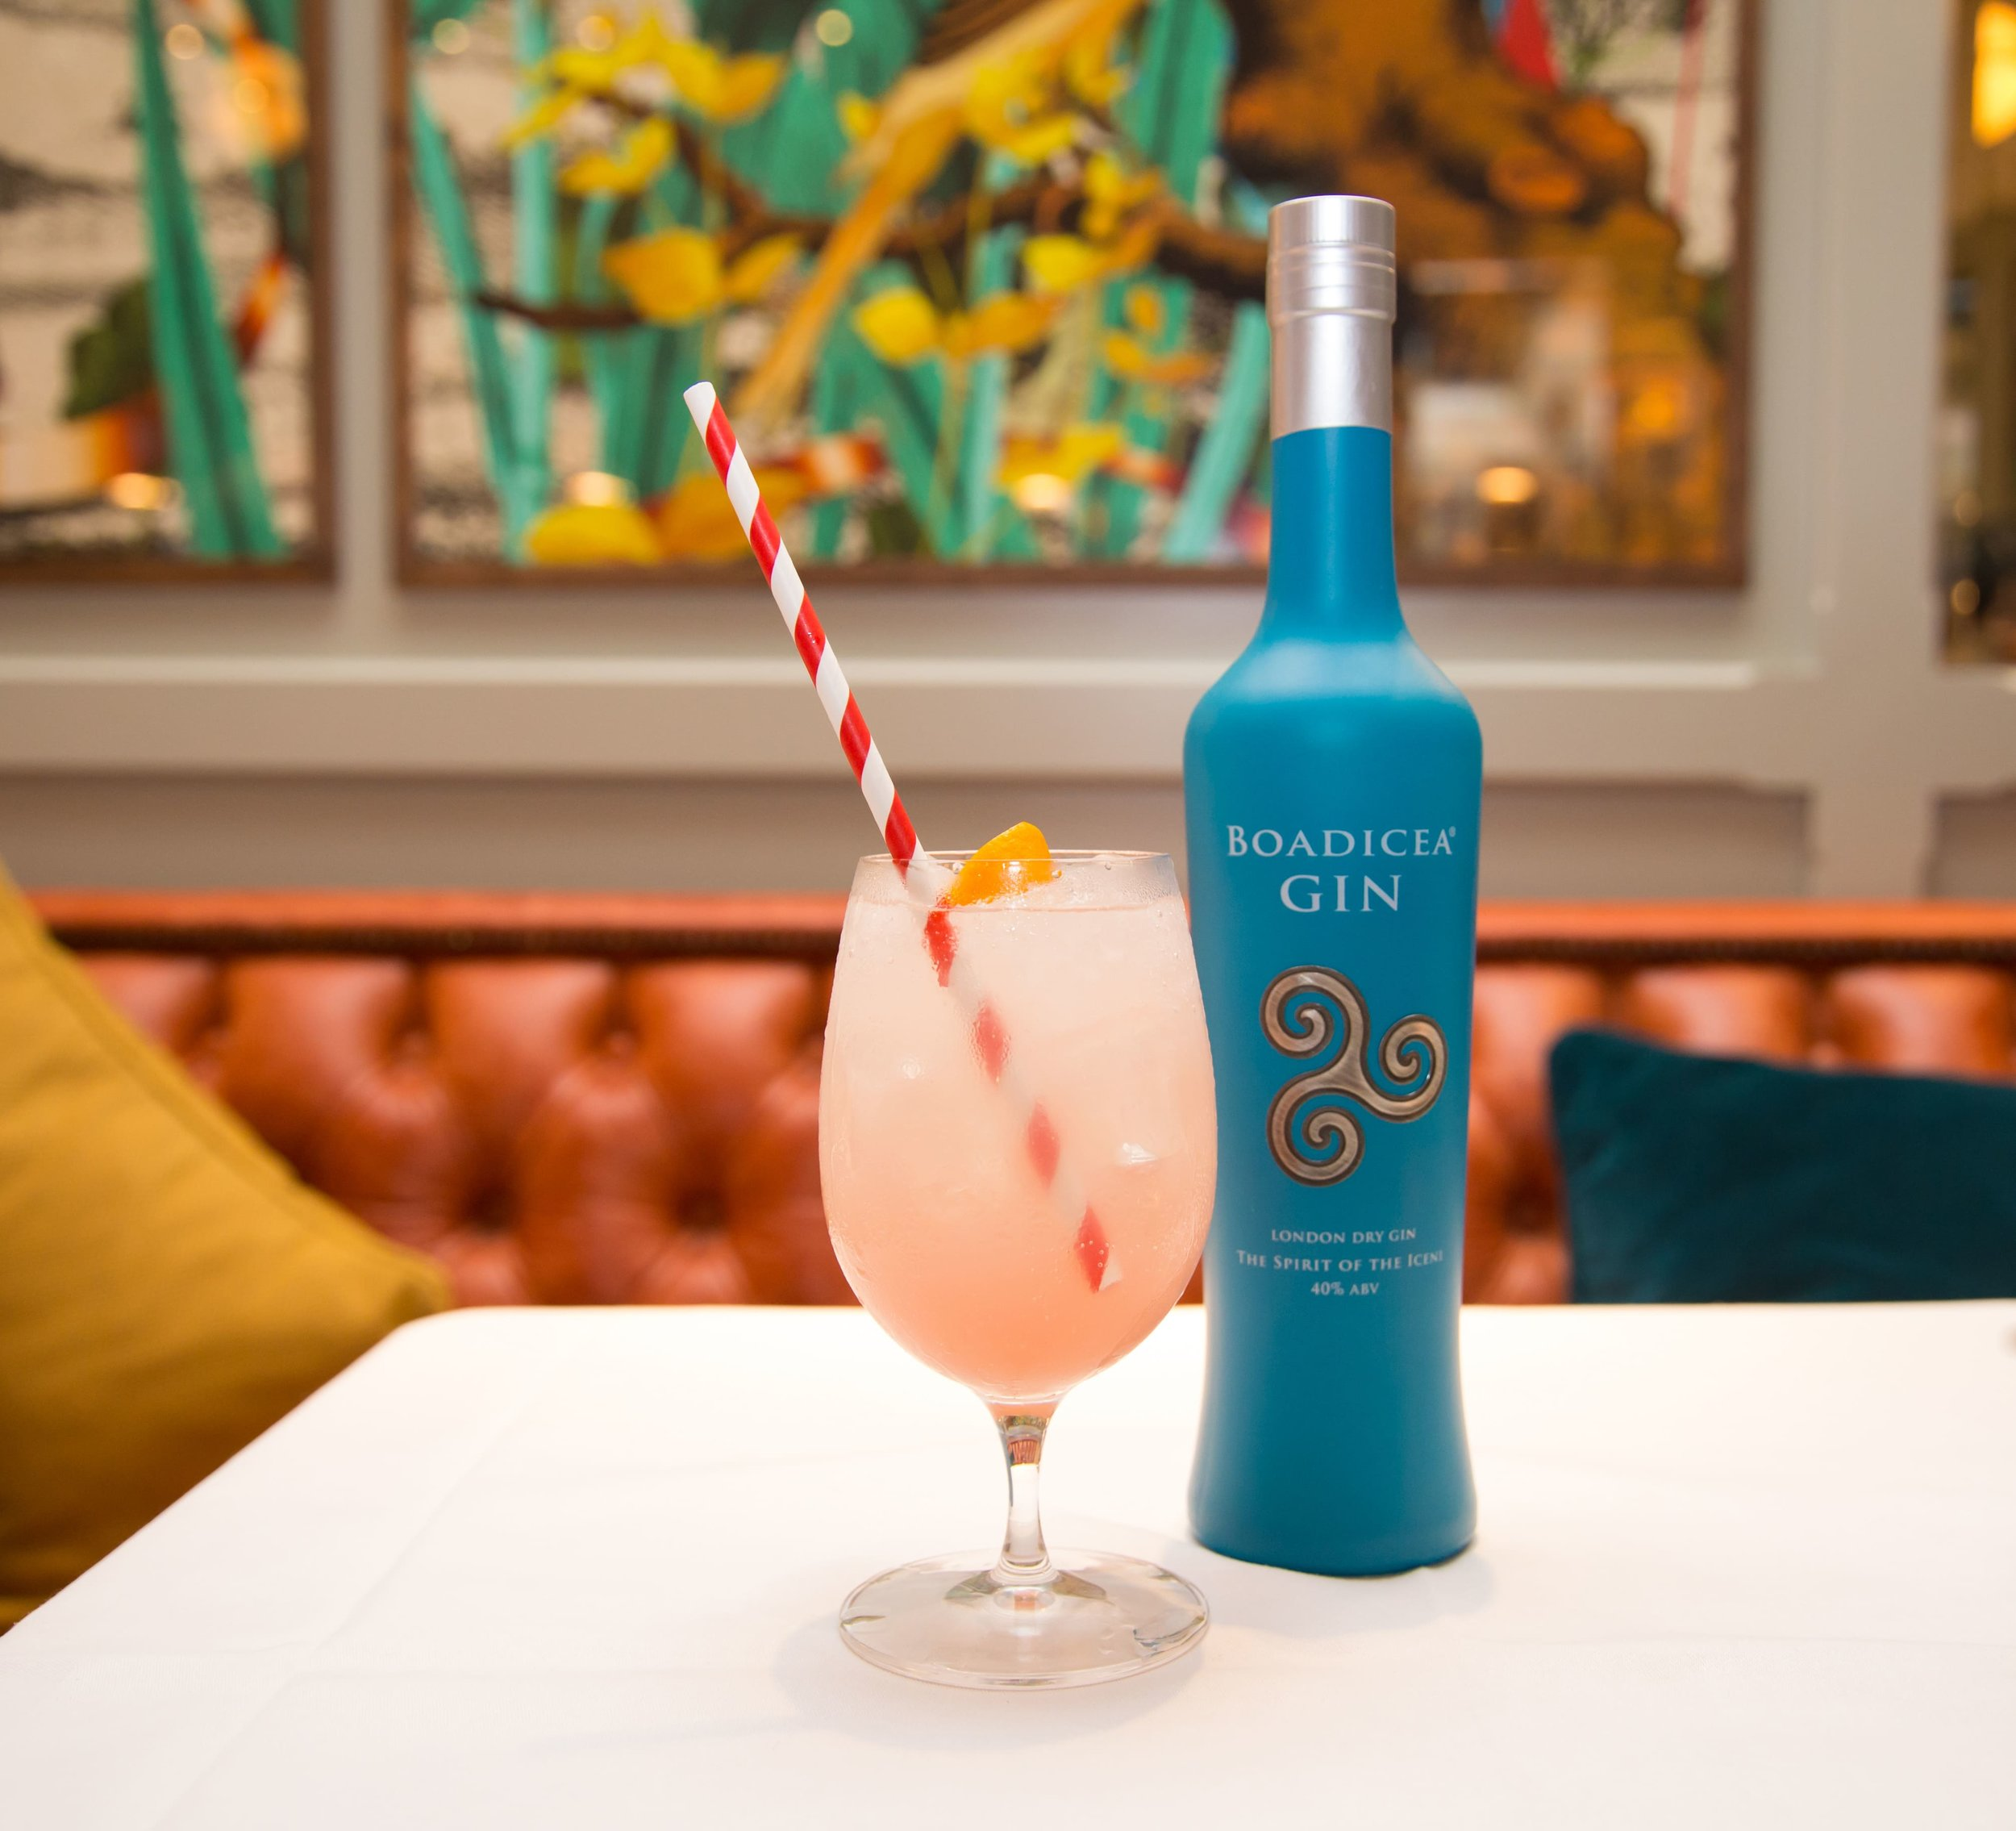 Japanese Warrior cocktail – Boadicea Classic gin, yuzu juice, hibiscus syrup topped with Fever tree lemonade – garnished with orange twist